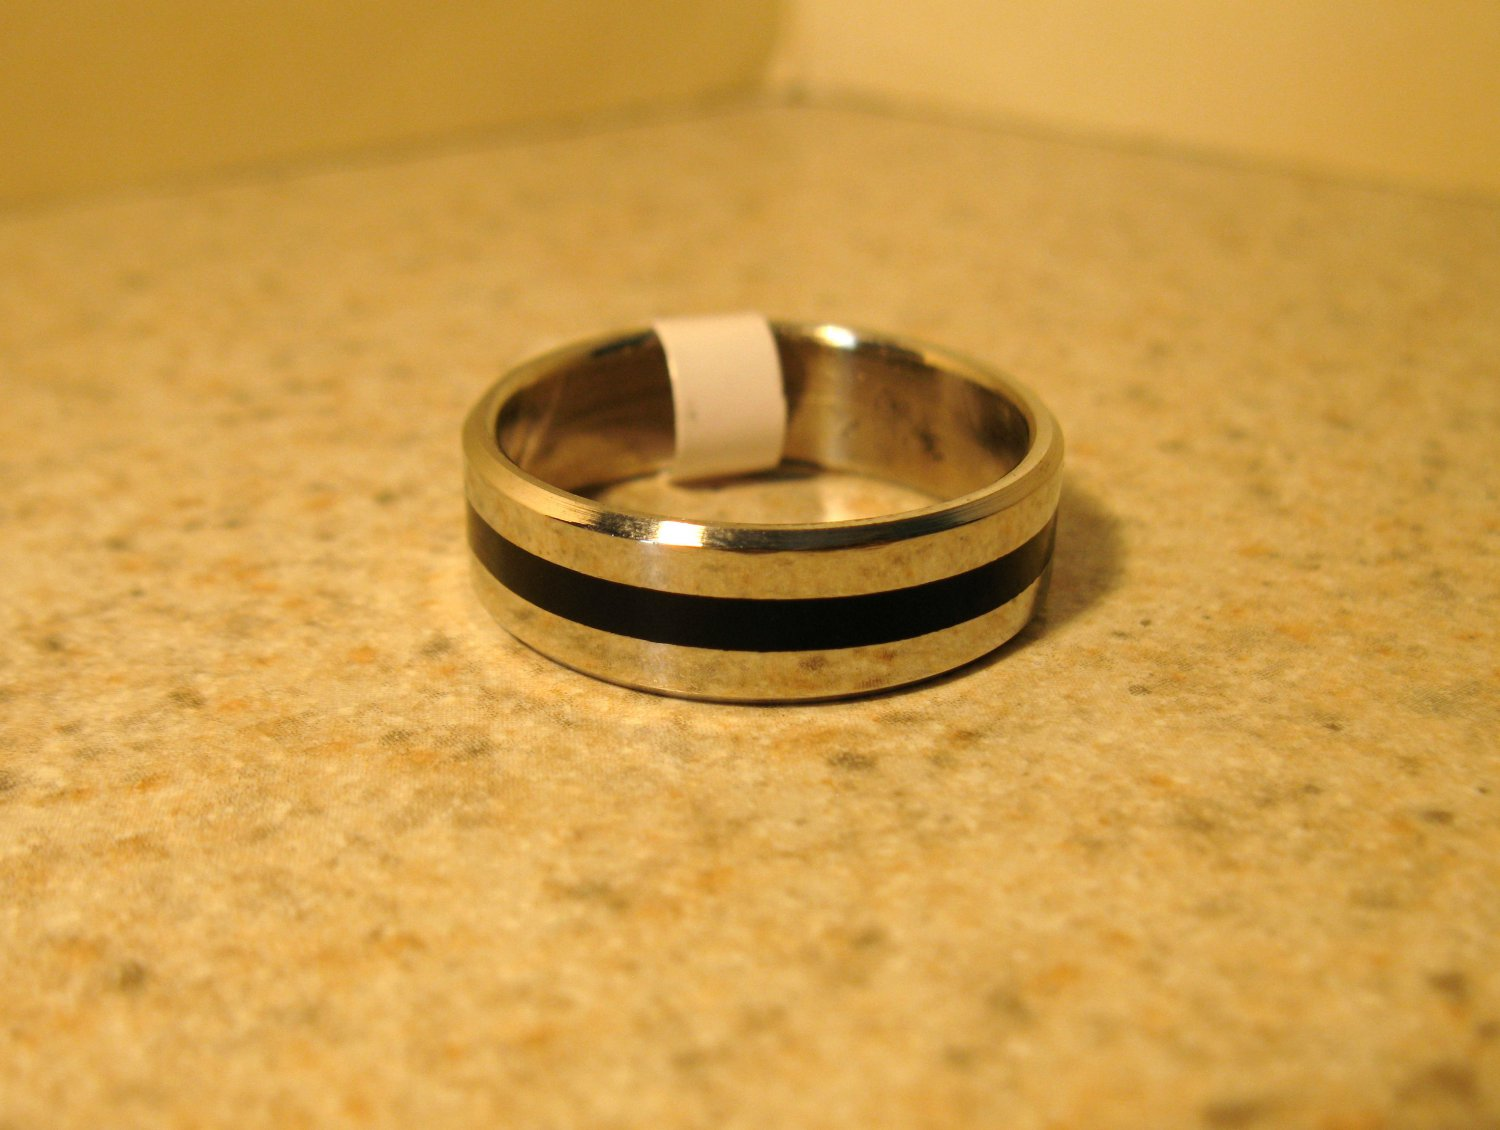 Silver with Black Wedding Band Rings Unisex Sizes 11 New #141